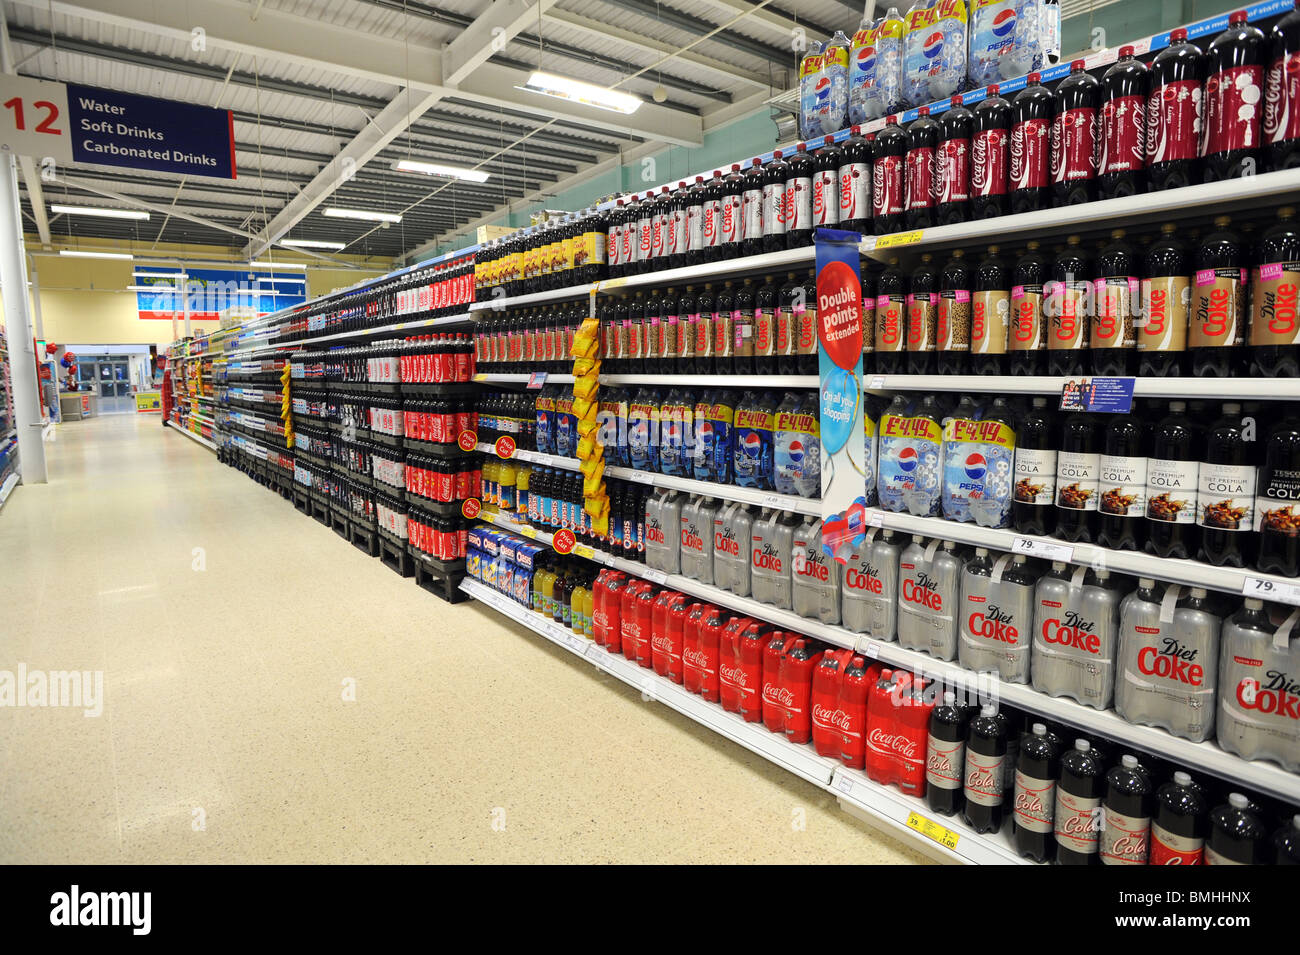 Bottles of different types of coke and soft drinks on sale in Tesco - Stock Image